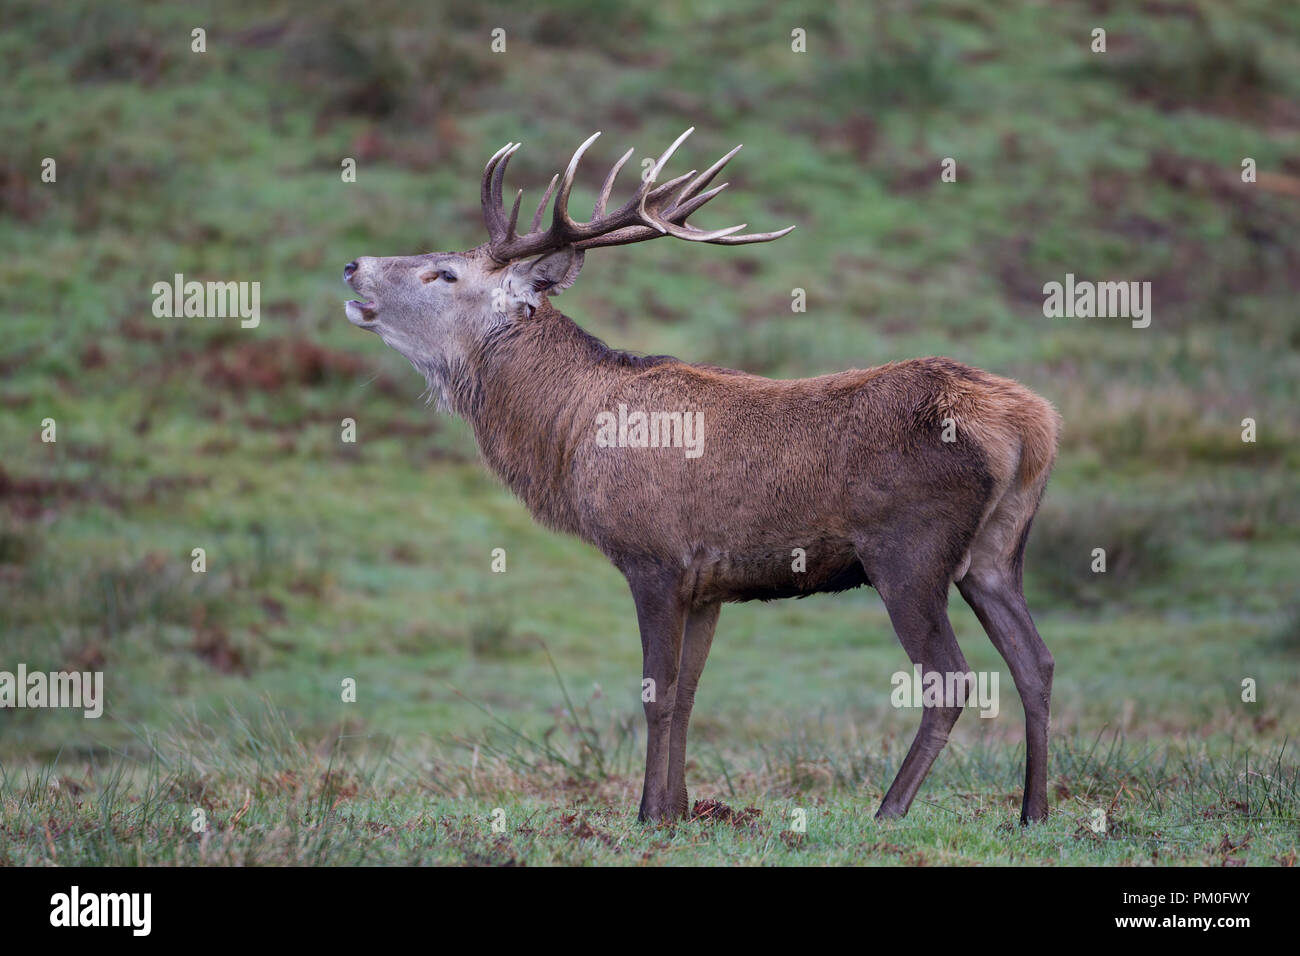 Male Red Deer Cervus elaphus with magnificent antlers calling in Autumn - Stock Image